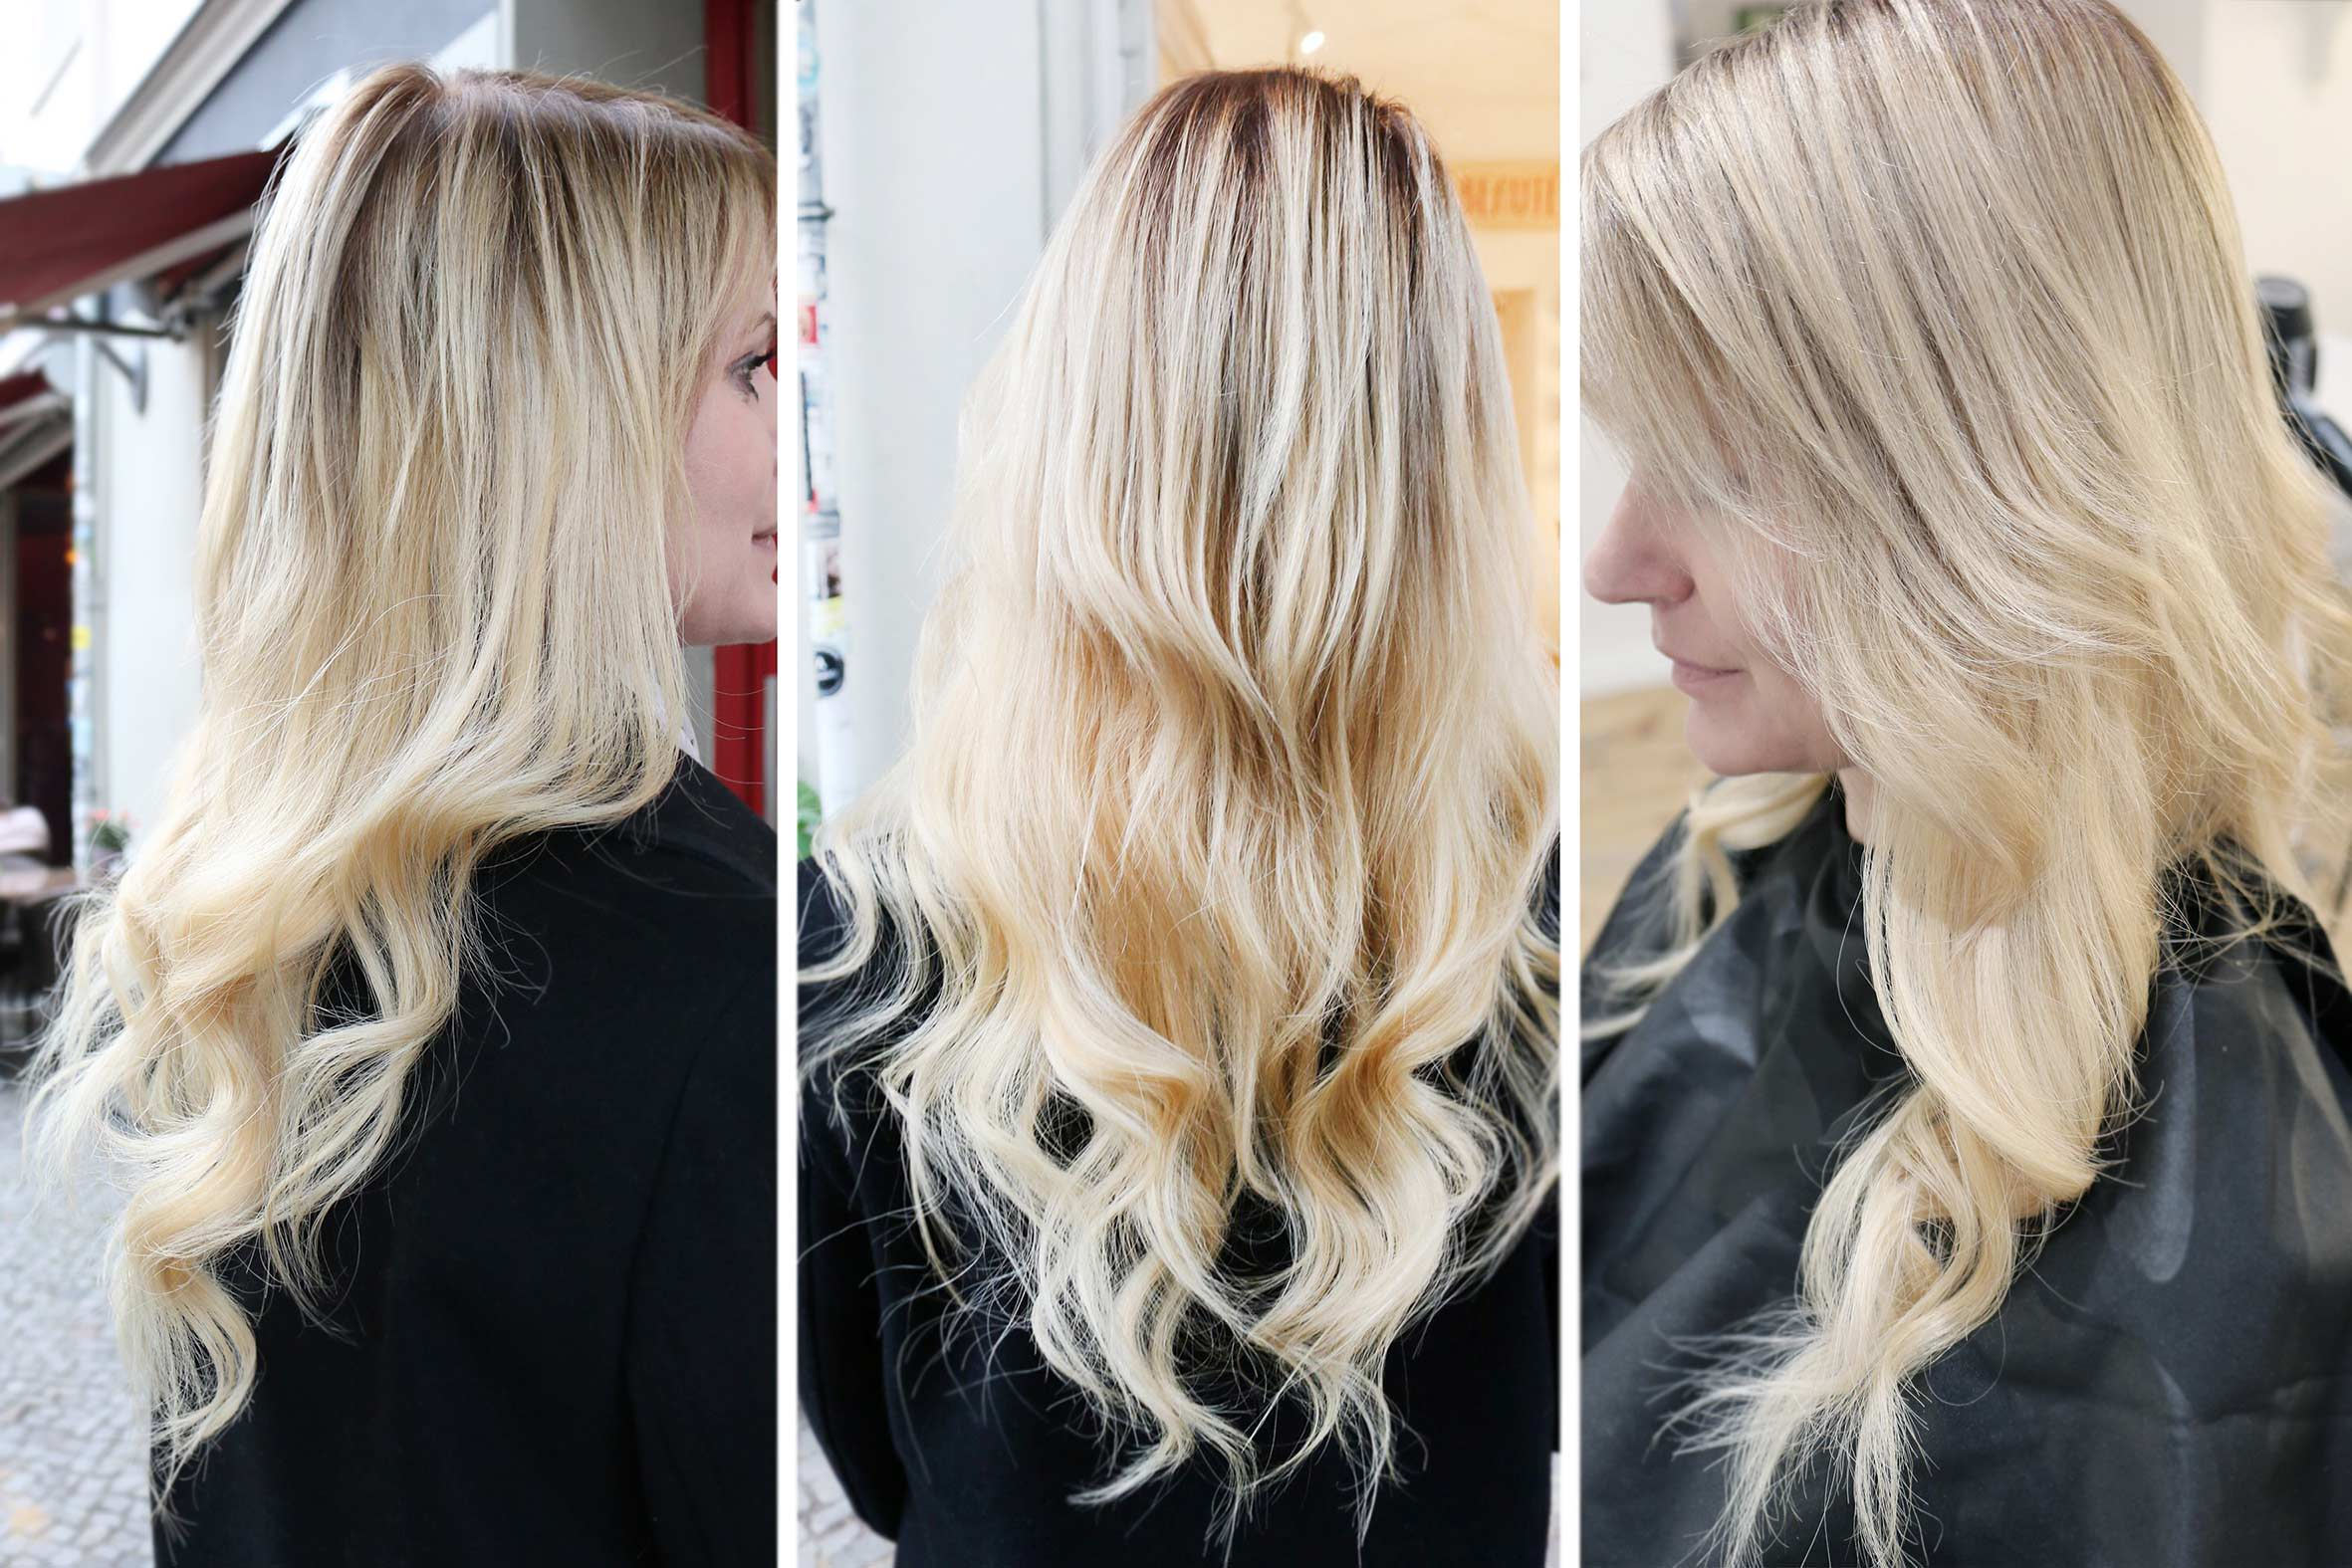 tape in extensions aus virgin echthaar in blondem haar